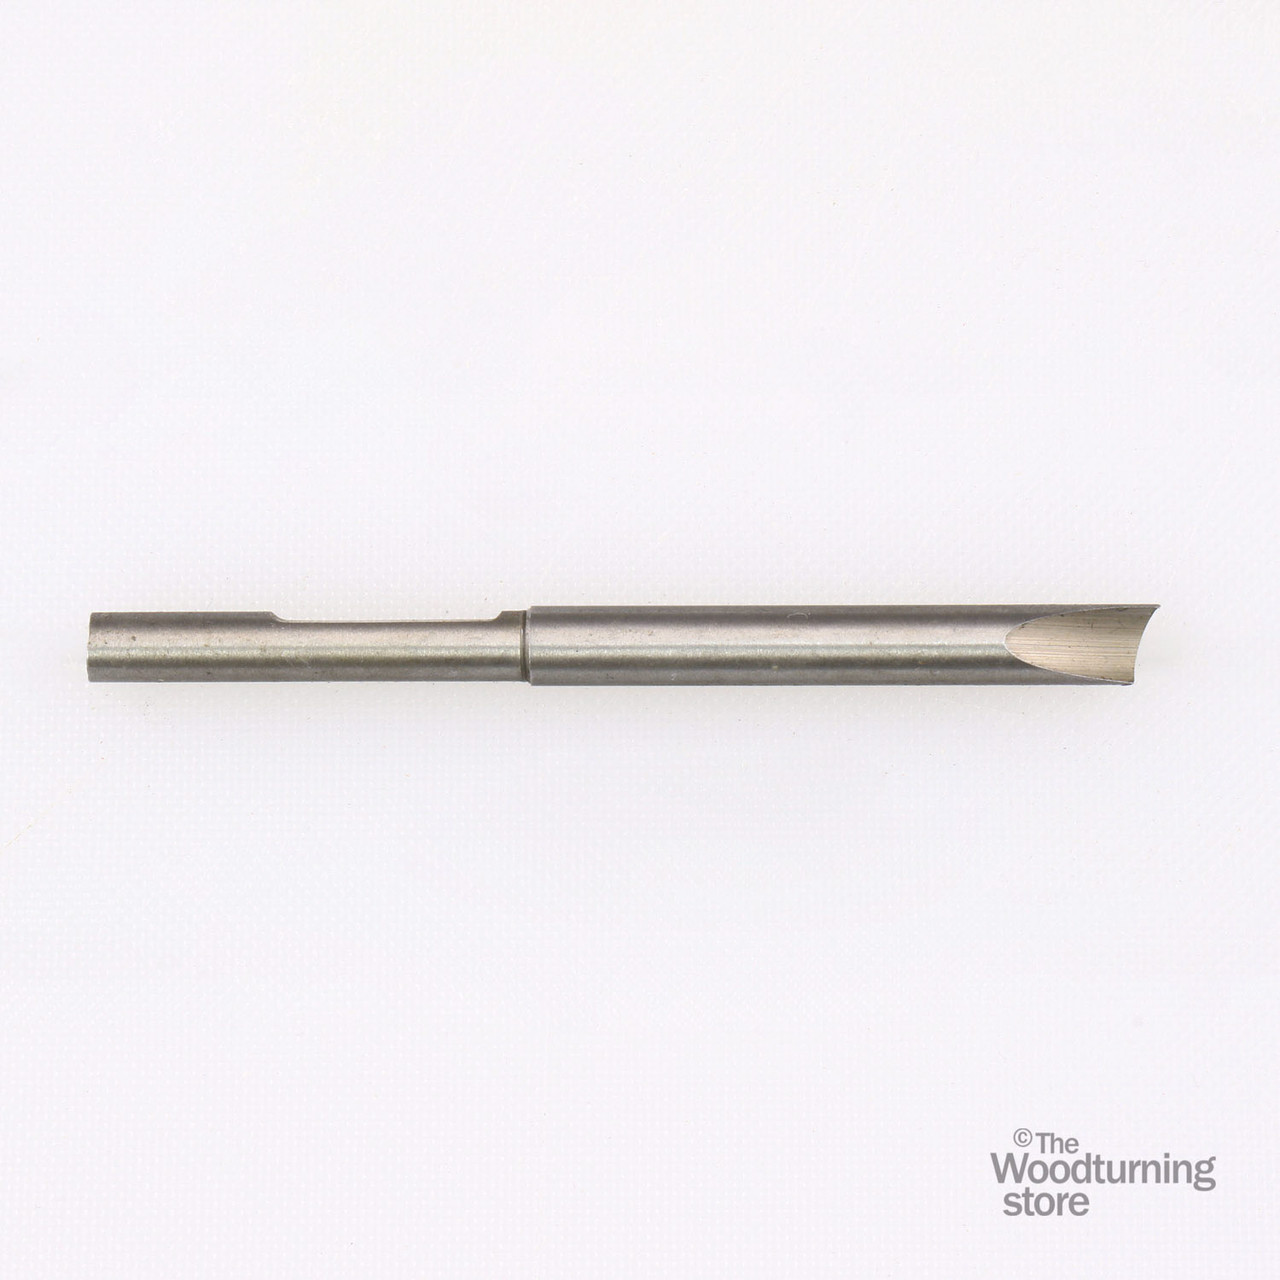 Legacy 8mm Pen Mill, Replacement Shaft